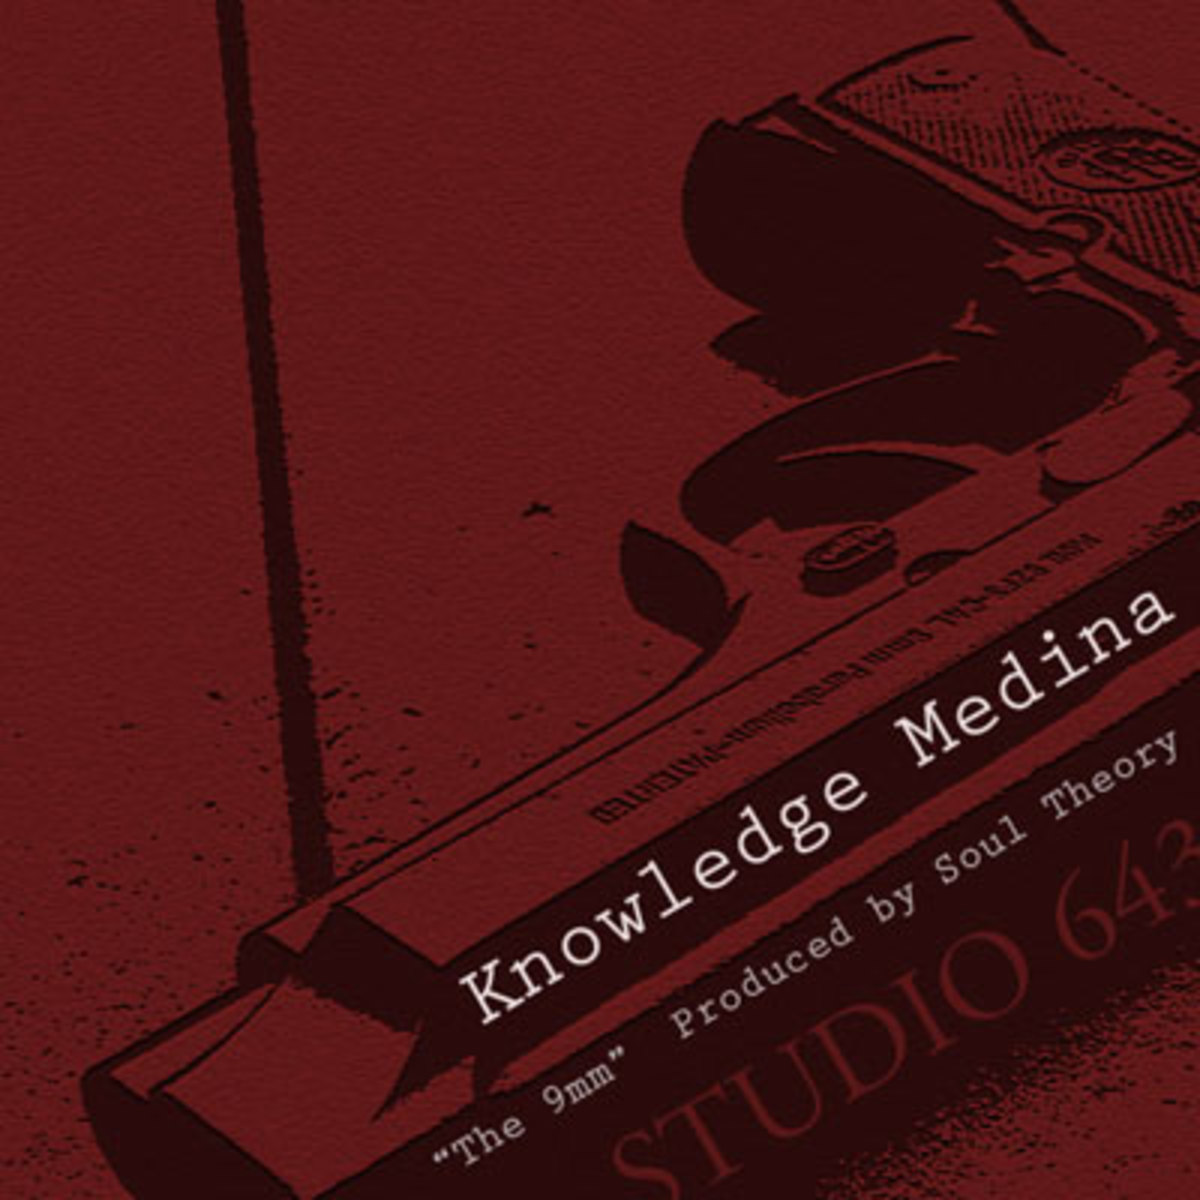 knowledgemedina-the9.jpg